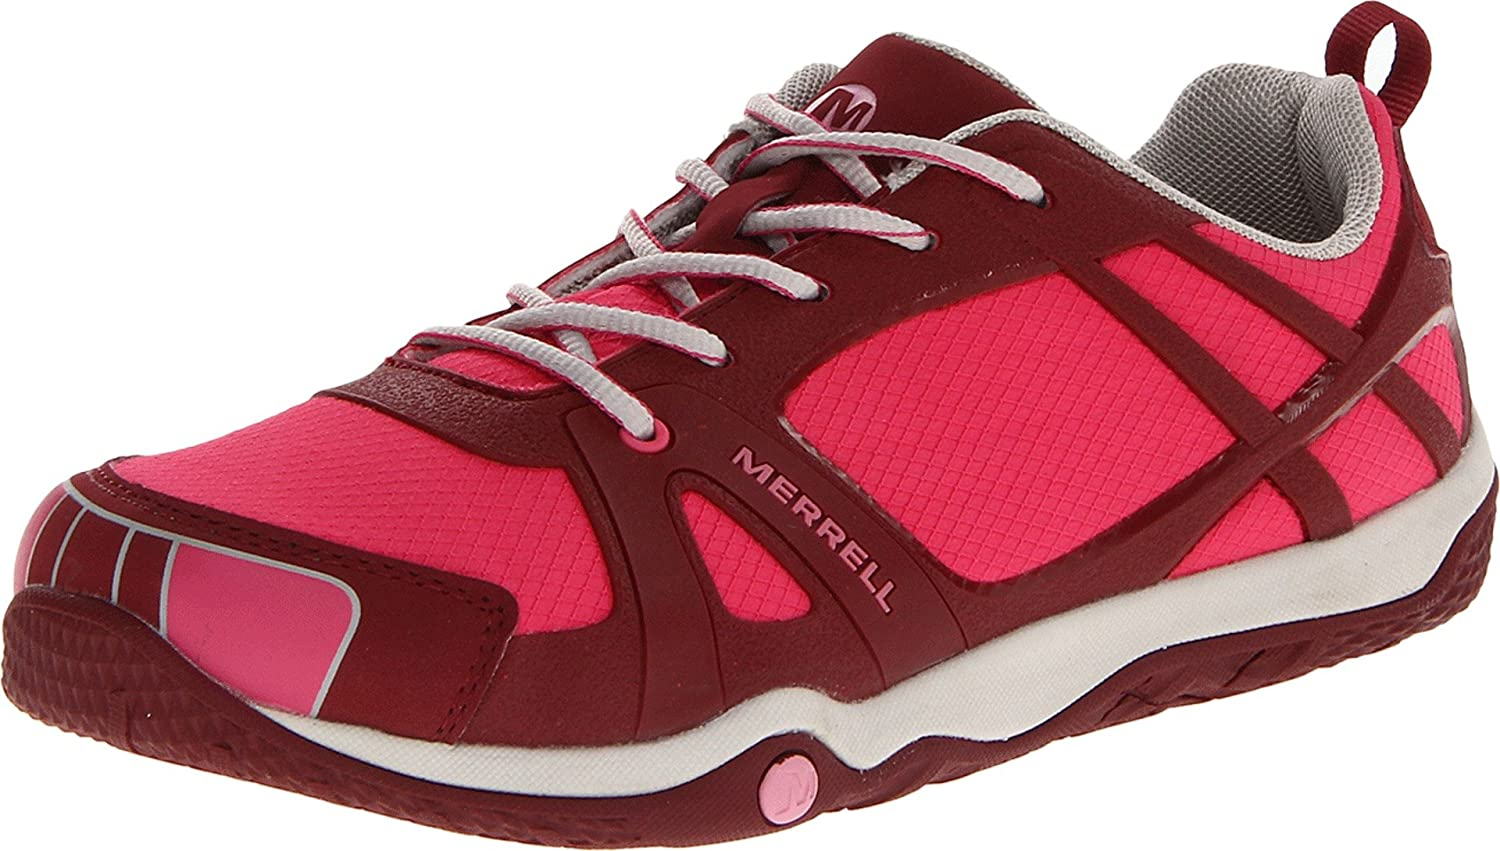 Merrell Proterra Sport Sneaker (Toddler/Little Kid/Big Kid) Ruby Wine 7 M US Big Kid Proterra Sport - K